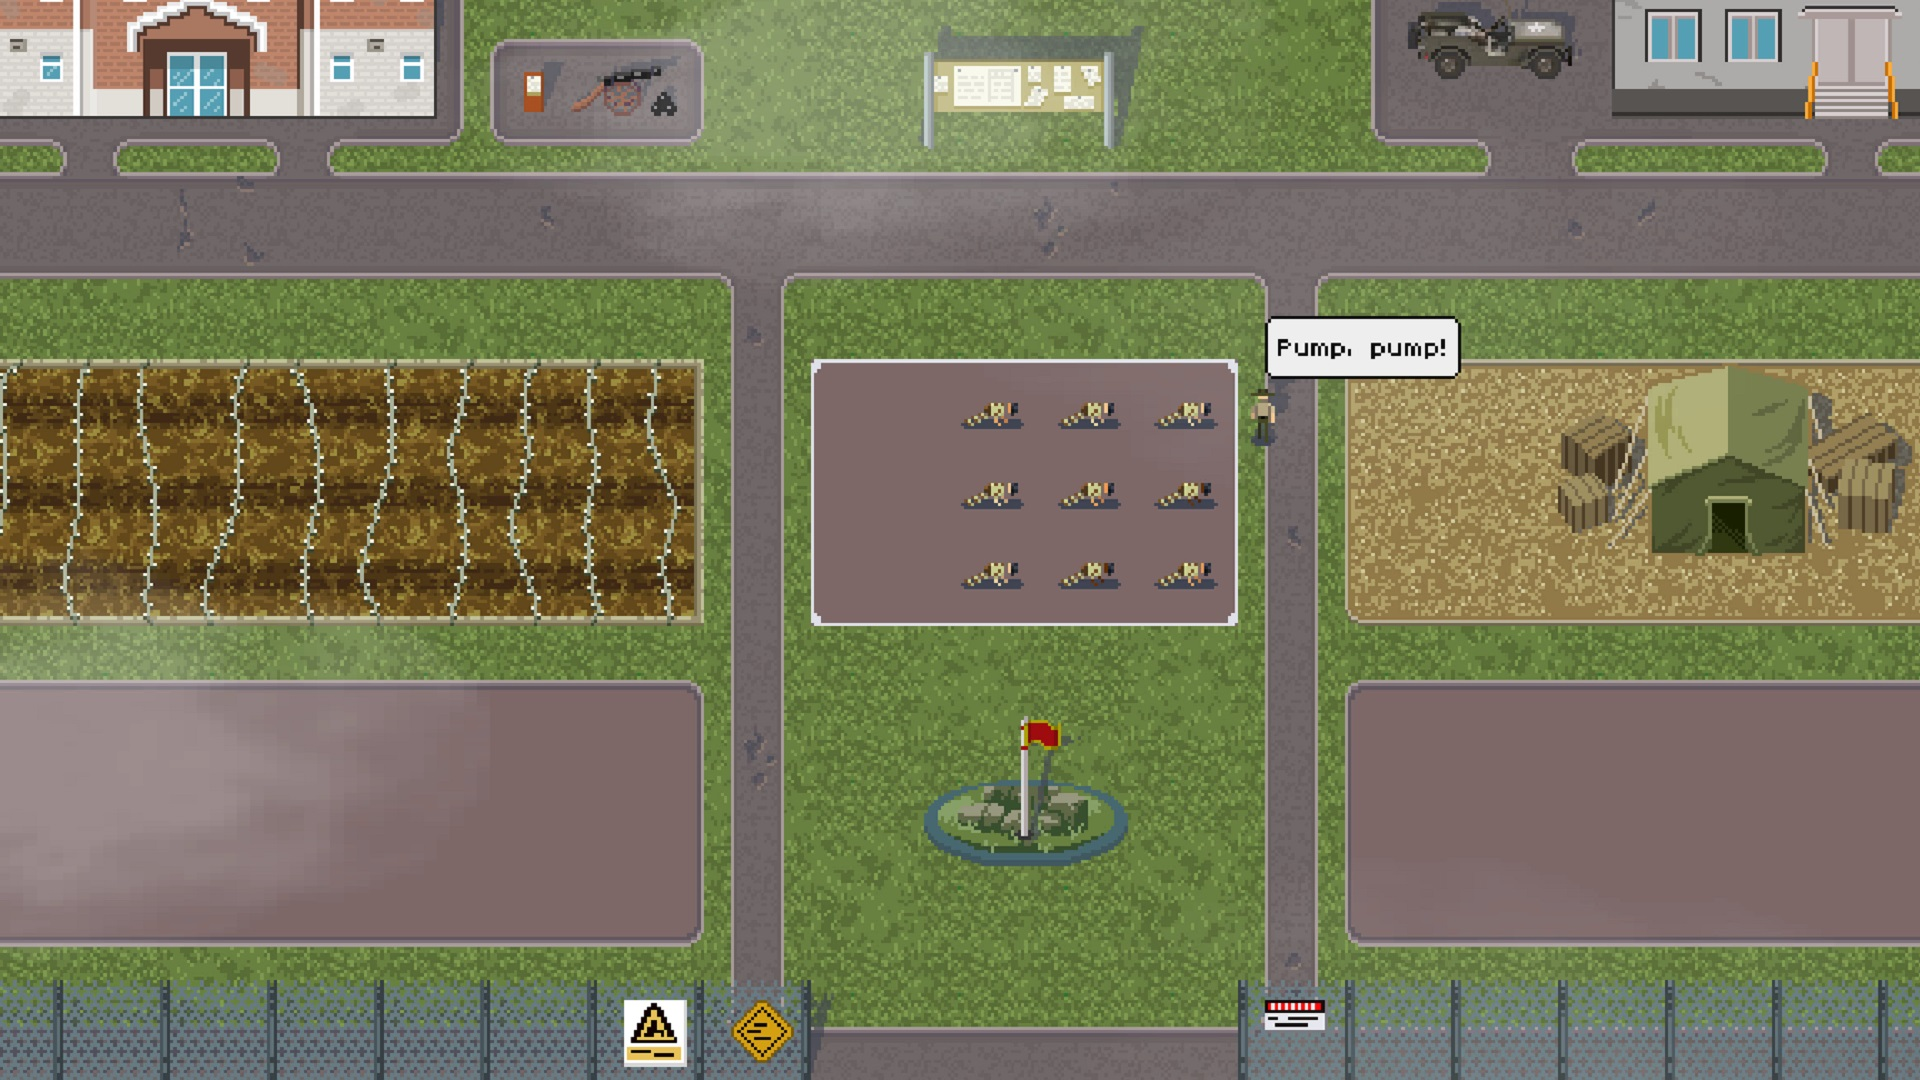 This boot camp management game is inspired by Full Metal Jacket's drill sergeant